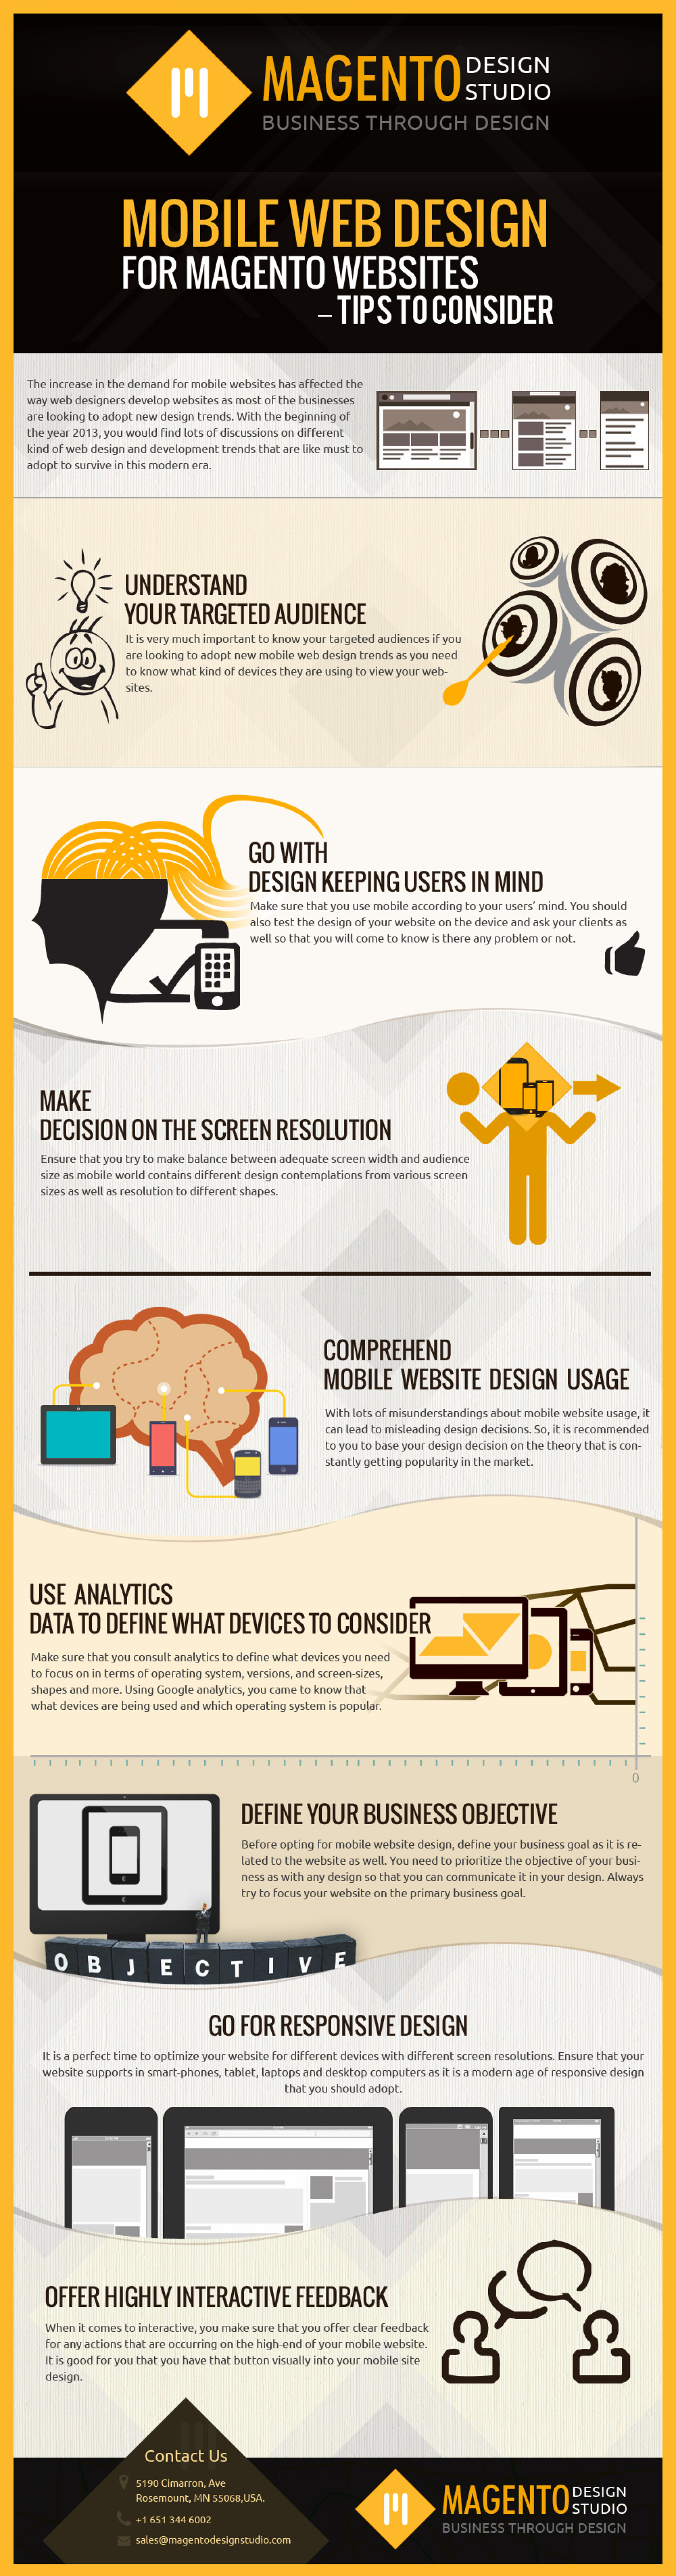 Mobile Web Design For Magento Websites – Tips to Consider Infographic